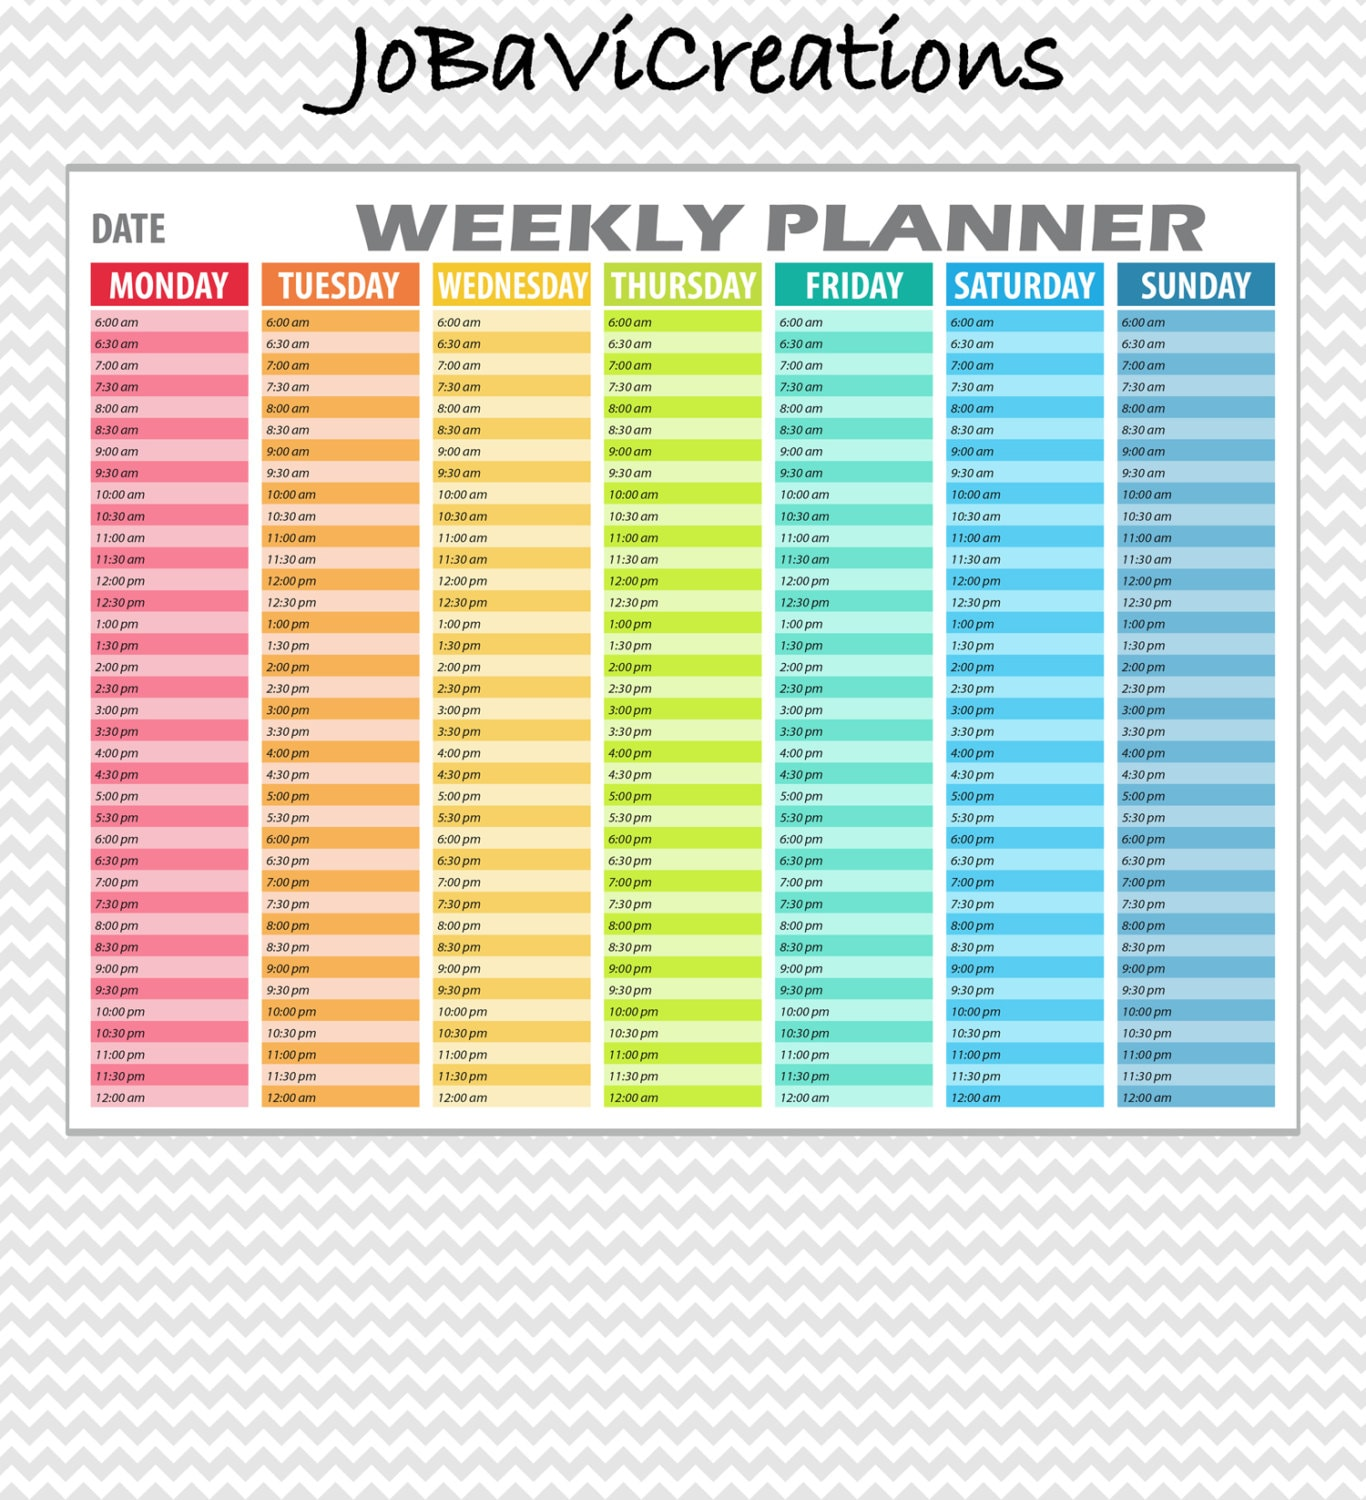 hourly weekly planner printable  daily planning printable